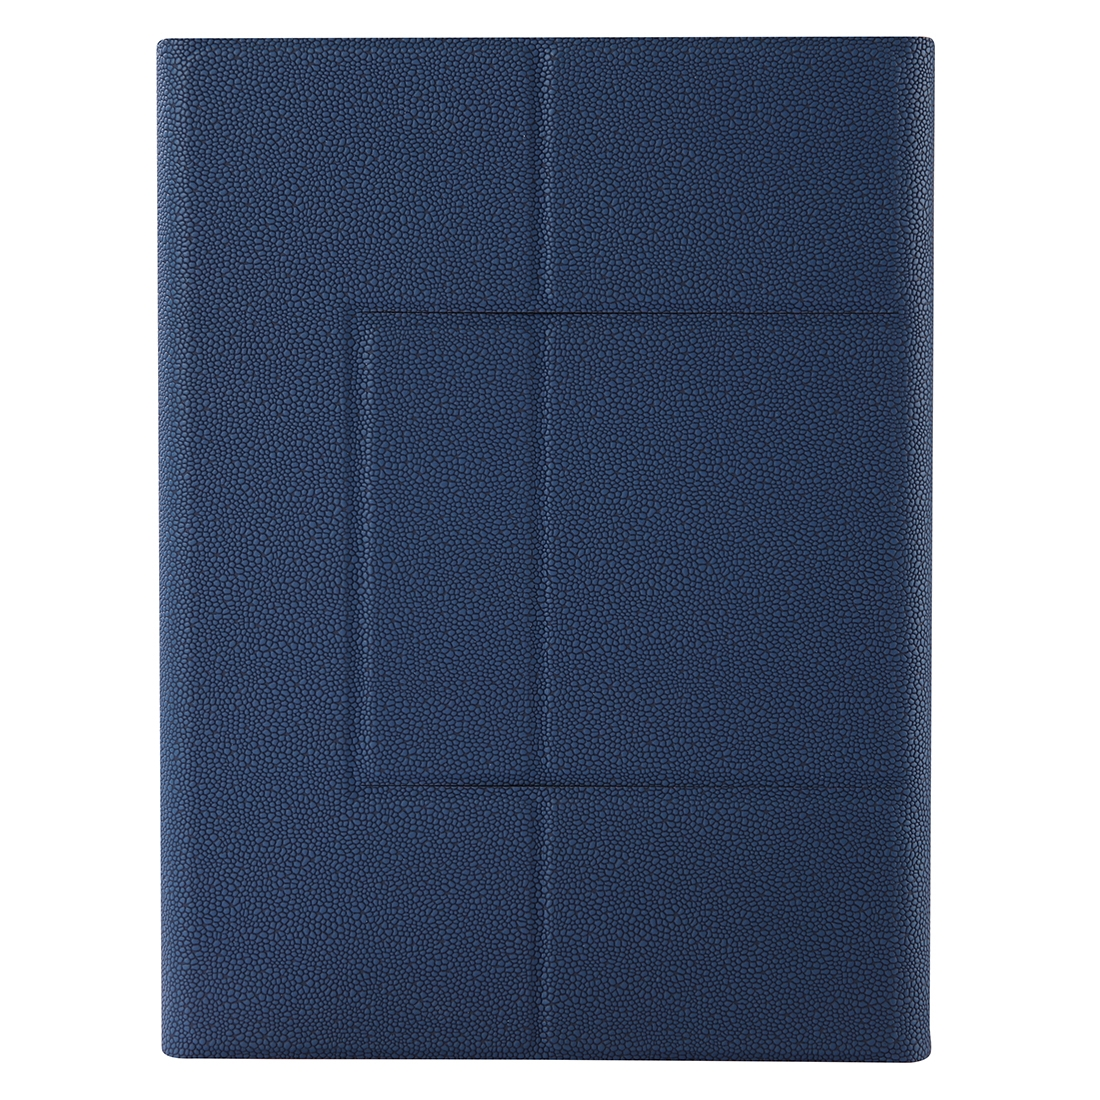 iPad Case With Keyboard & Bluetooth For iPad 10.2 Inch, Leather Case & Backlit Keyboard (Blue)